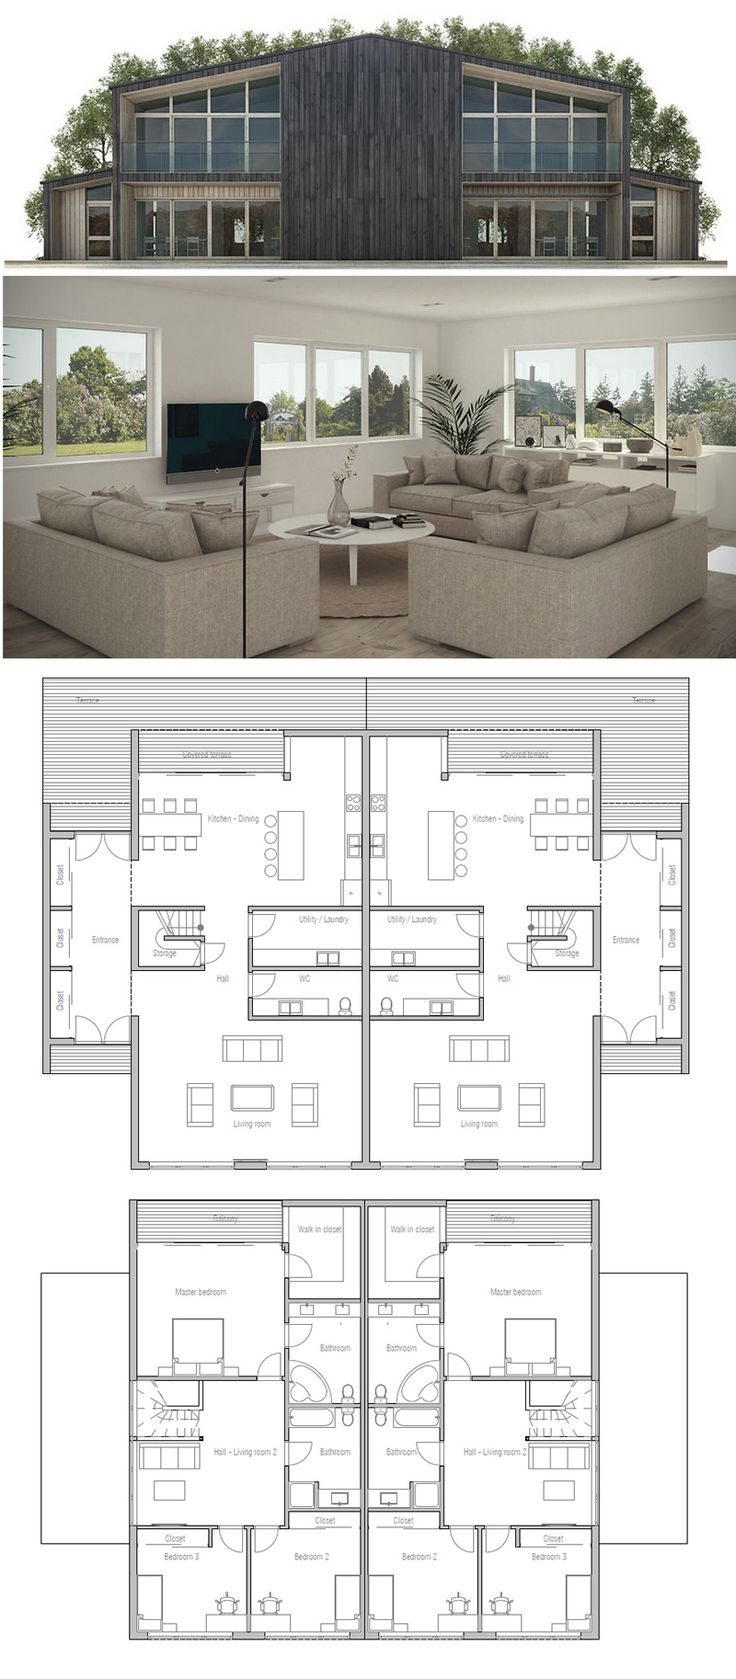 25 best ideas about duplex house plans on pinterest house floor plans one story houses and. Black Bedroom Furniture Sets. Home Design Ideas